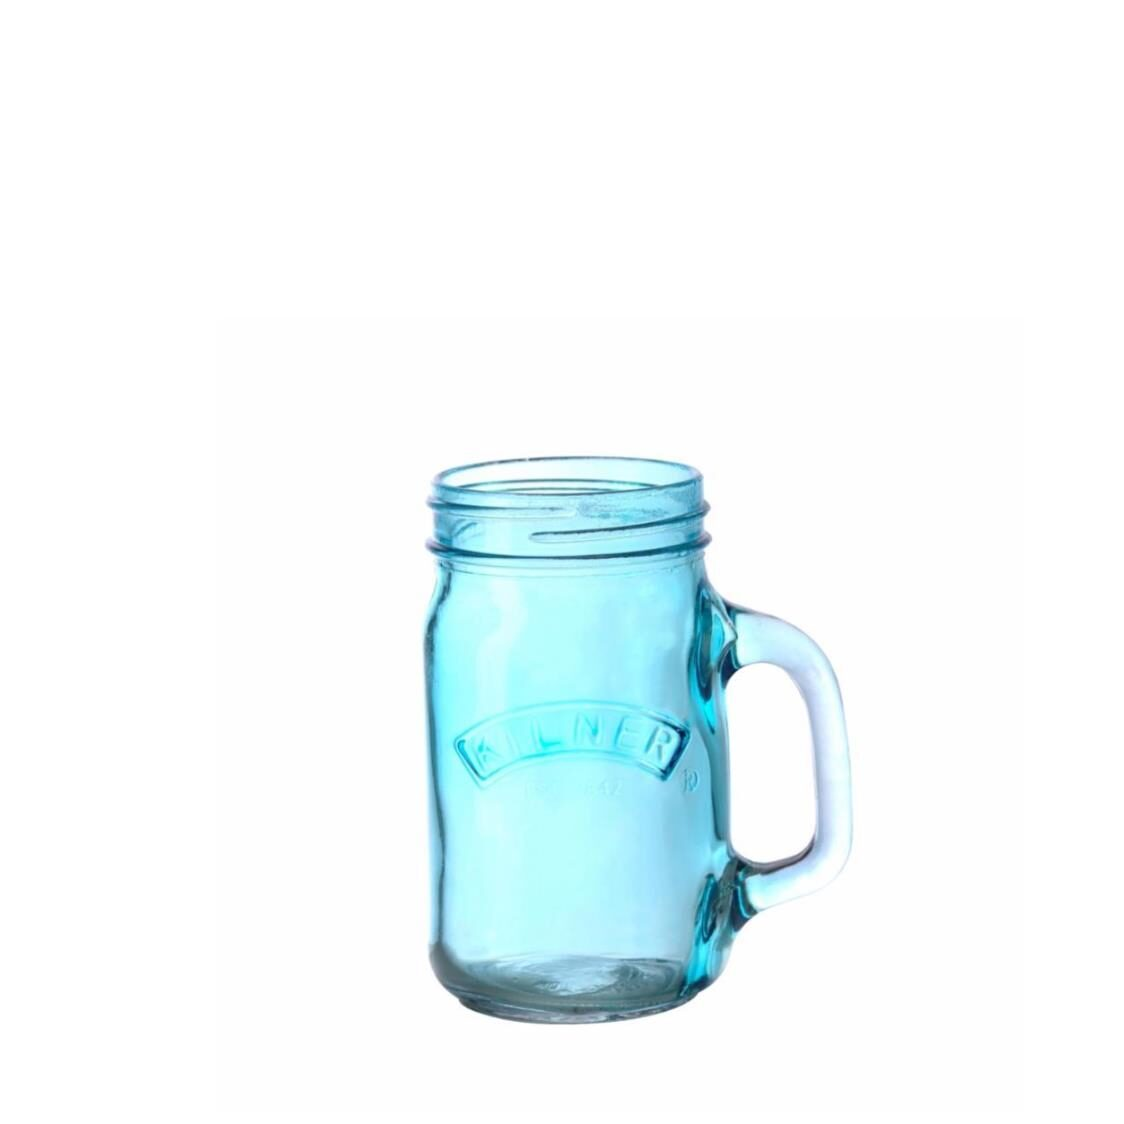 Handled Jar Blue